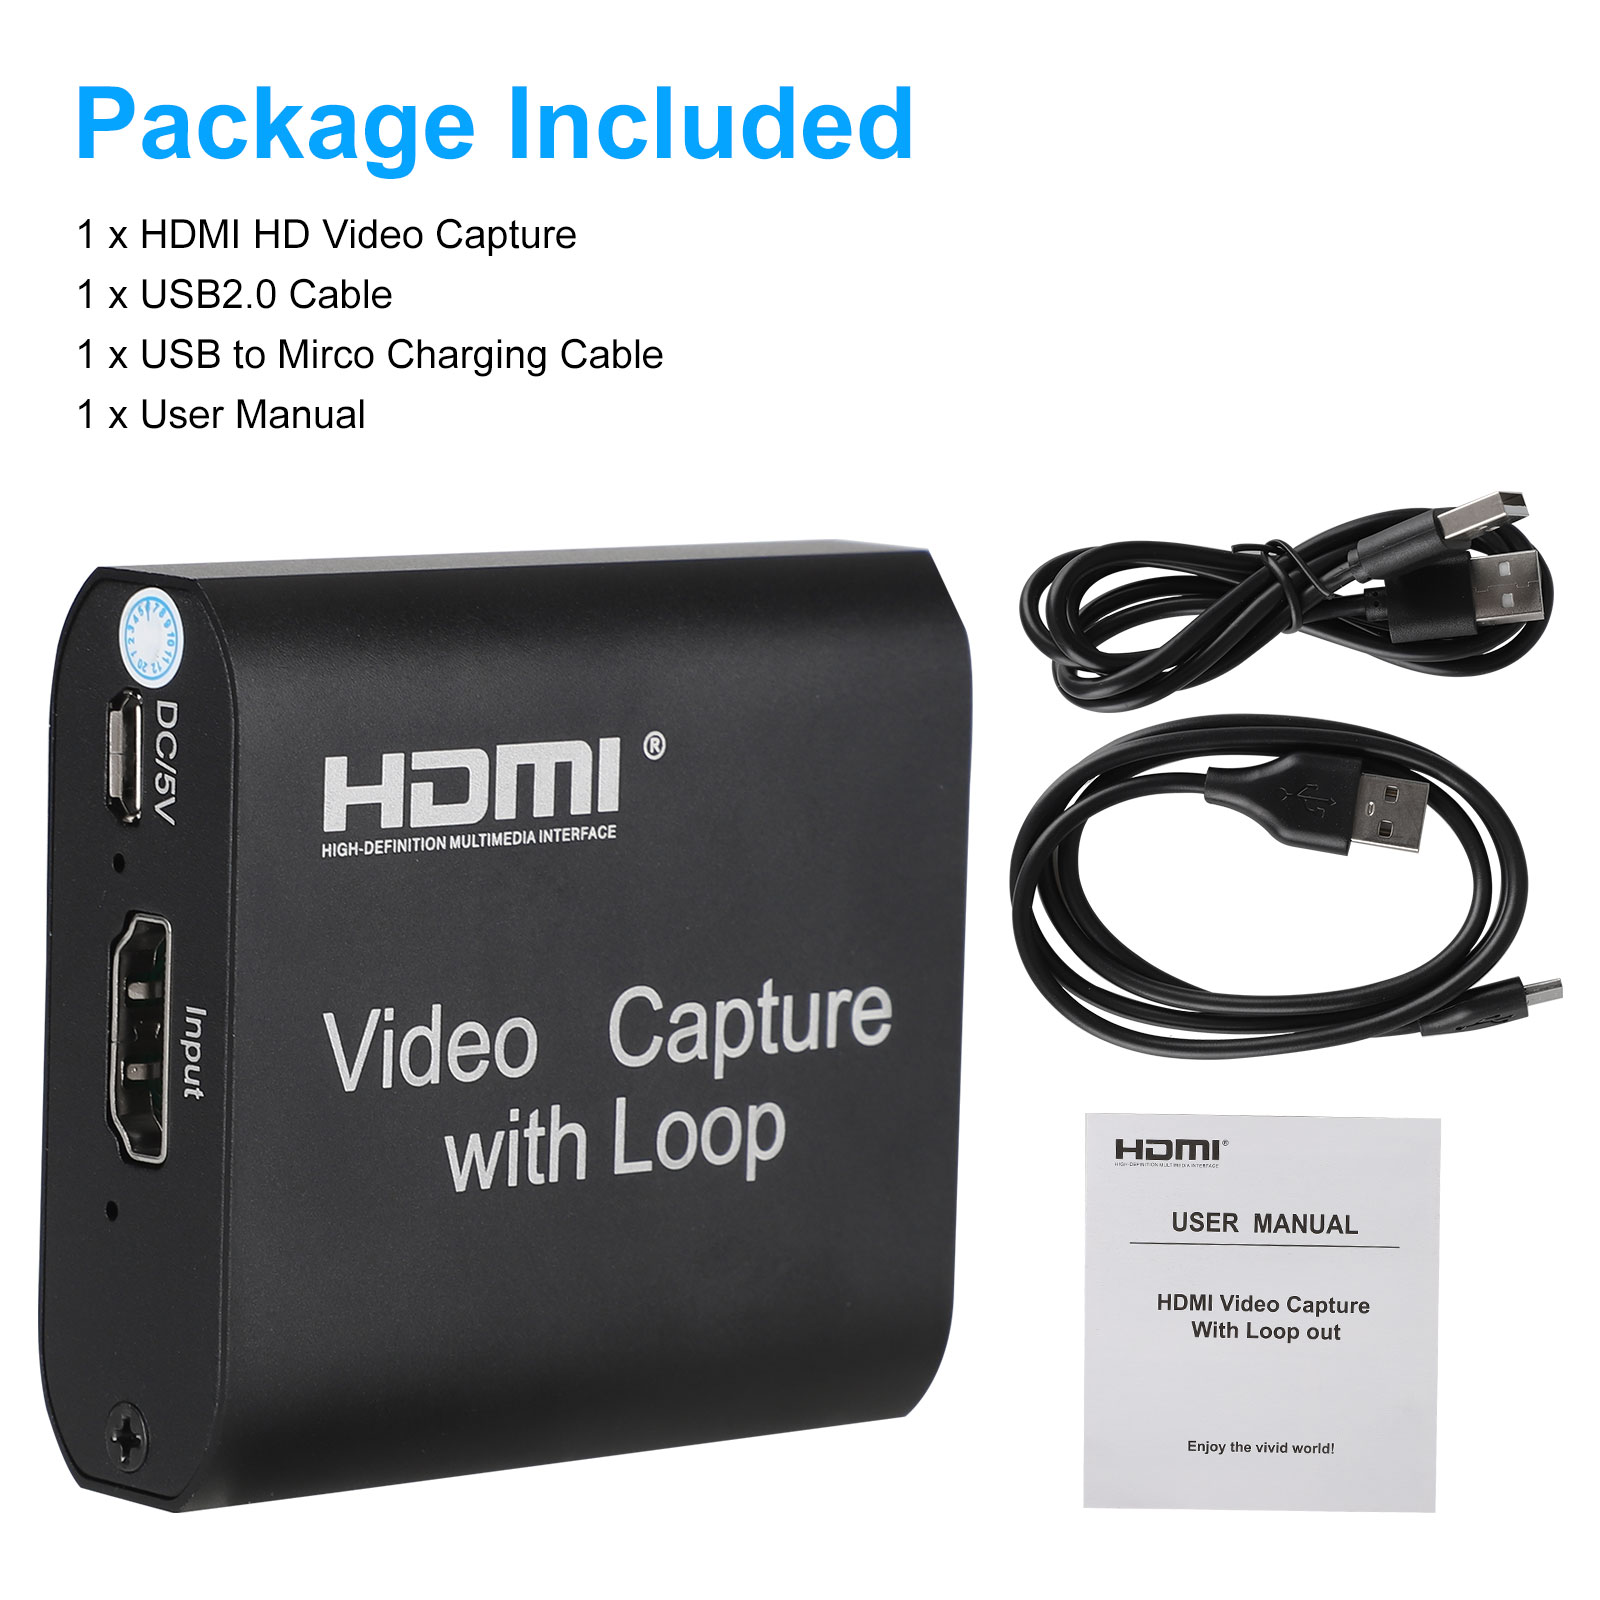 1080p-60fps-HDMI-Video-Digtal-Capture-Card-Recorder-for-Streaming-Meeting-Game thumbnail 9